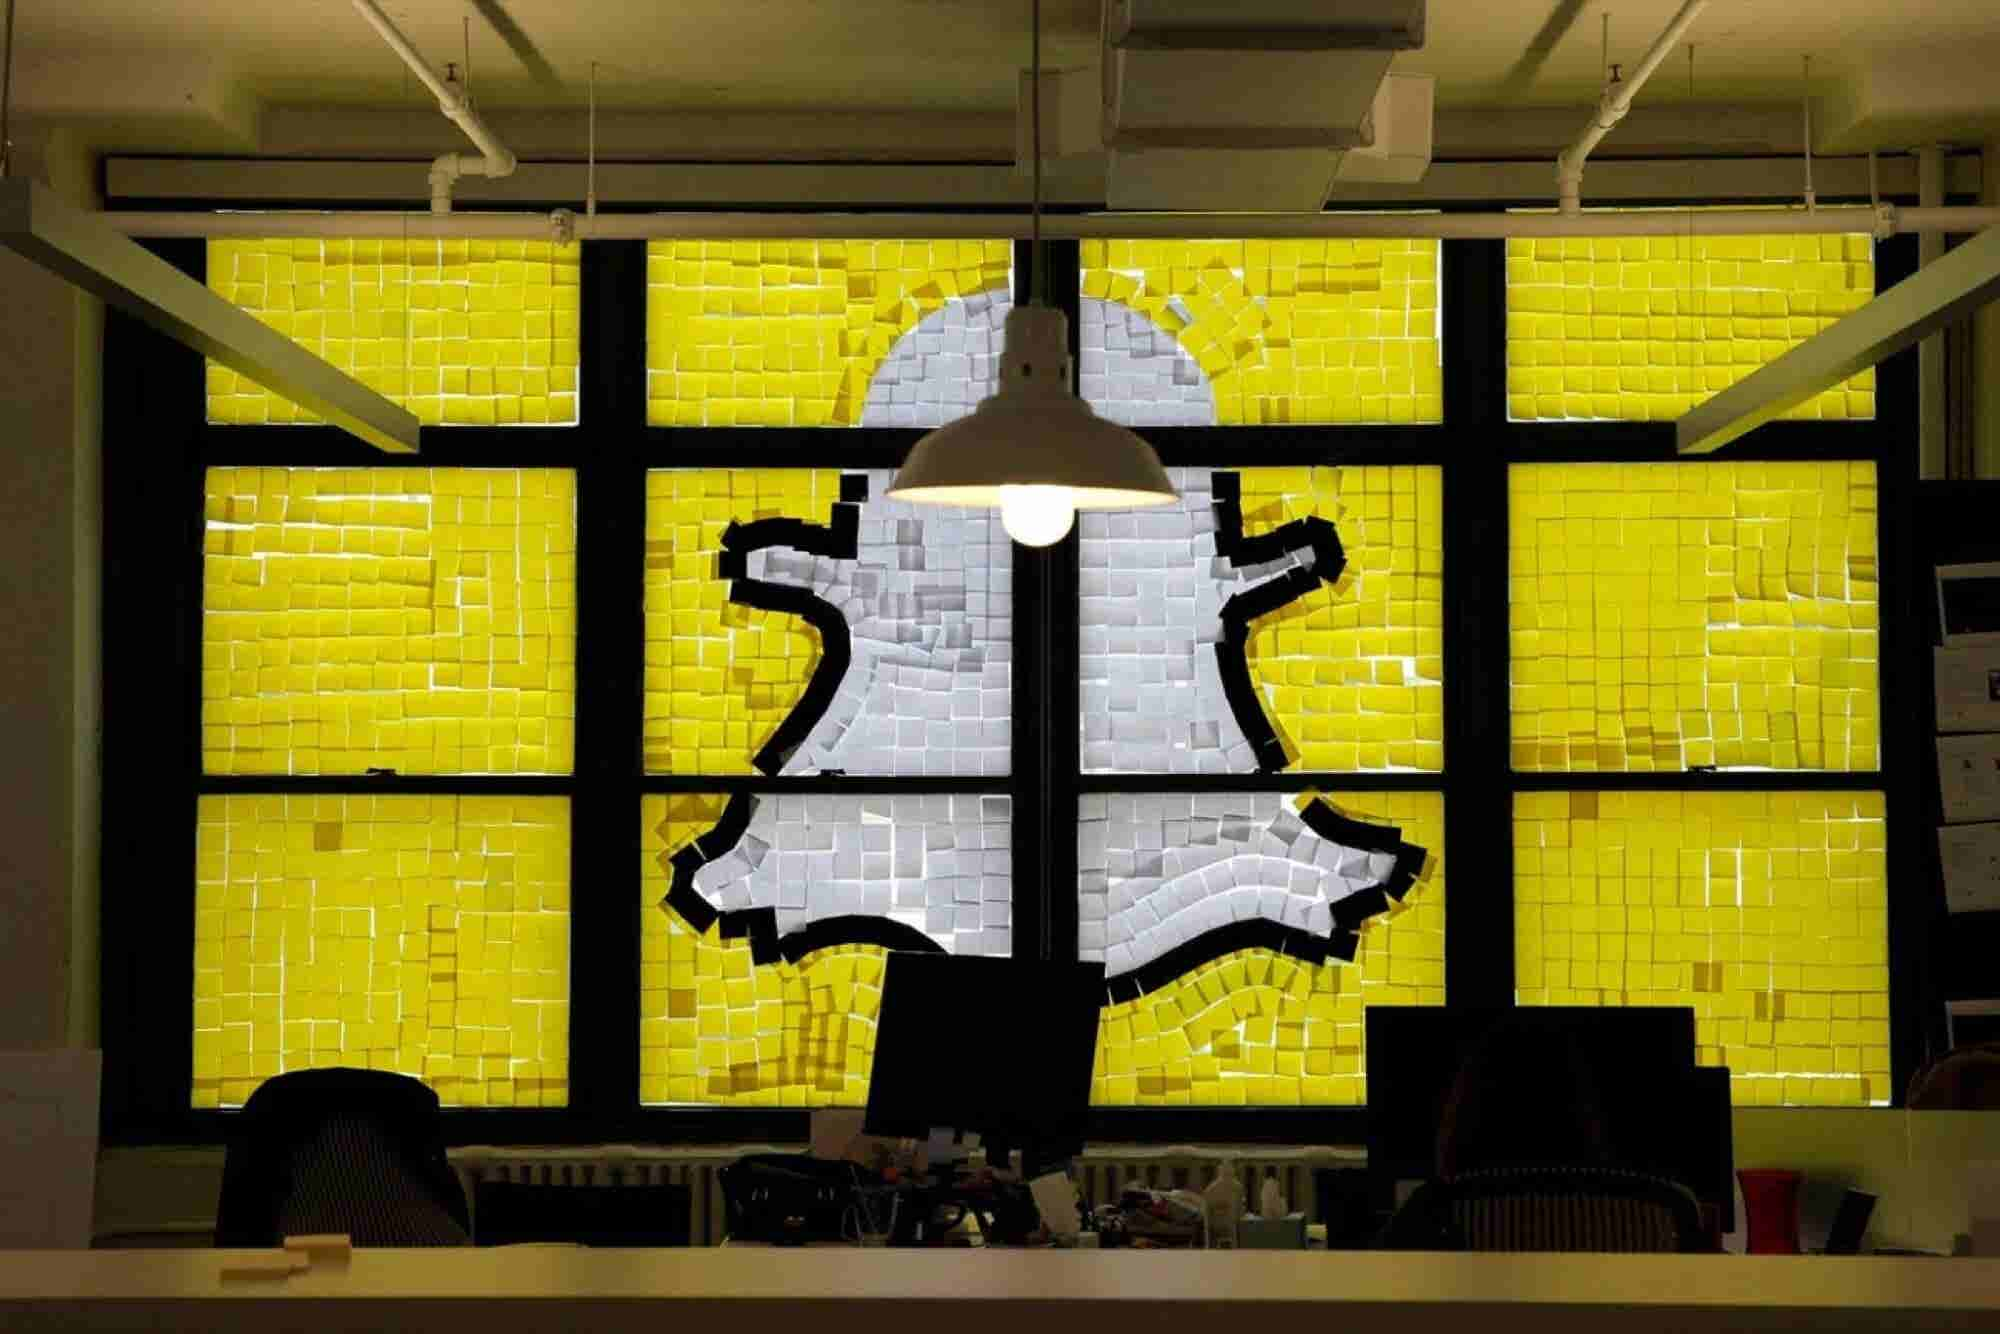 Snapchat Raises $1.81 Billion in New Funding Round